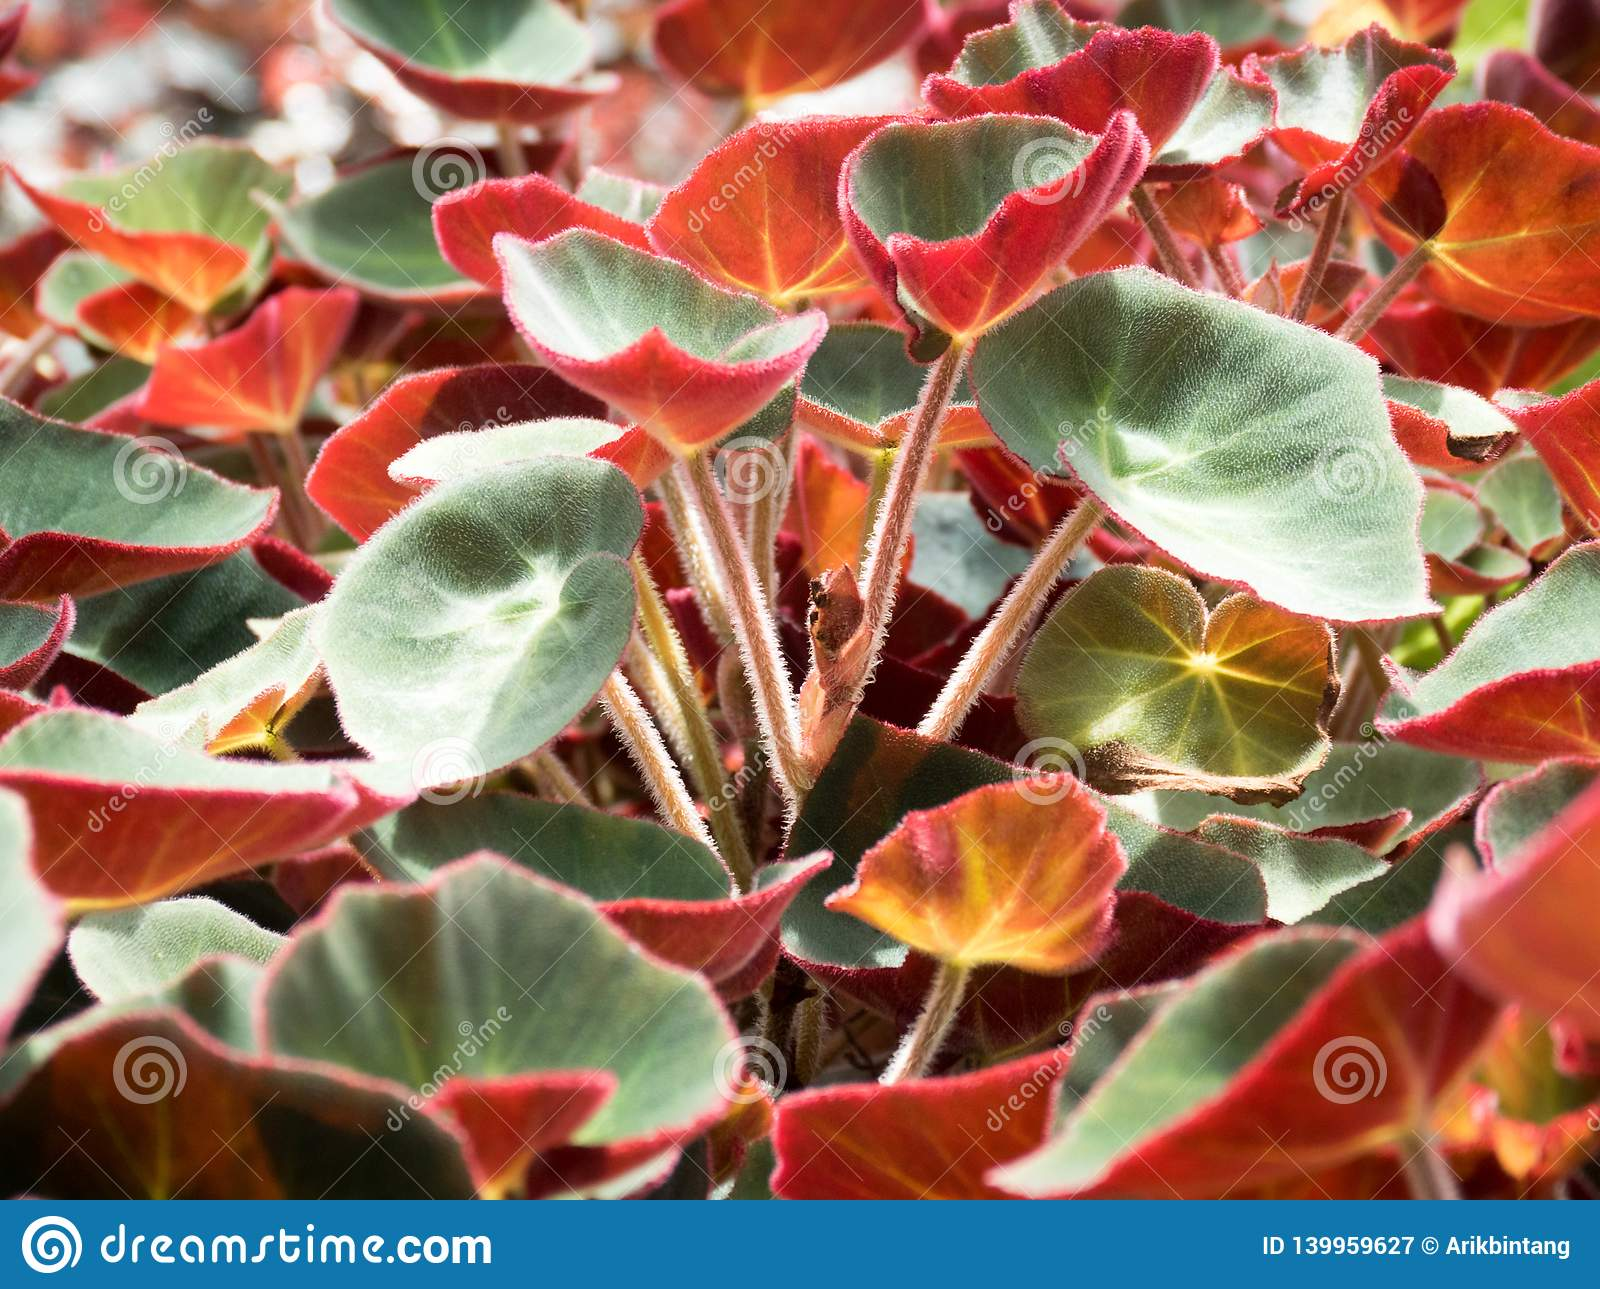 Begonia Plants Flowers In A Tropical Garden Stock Image Image